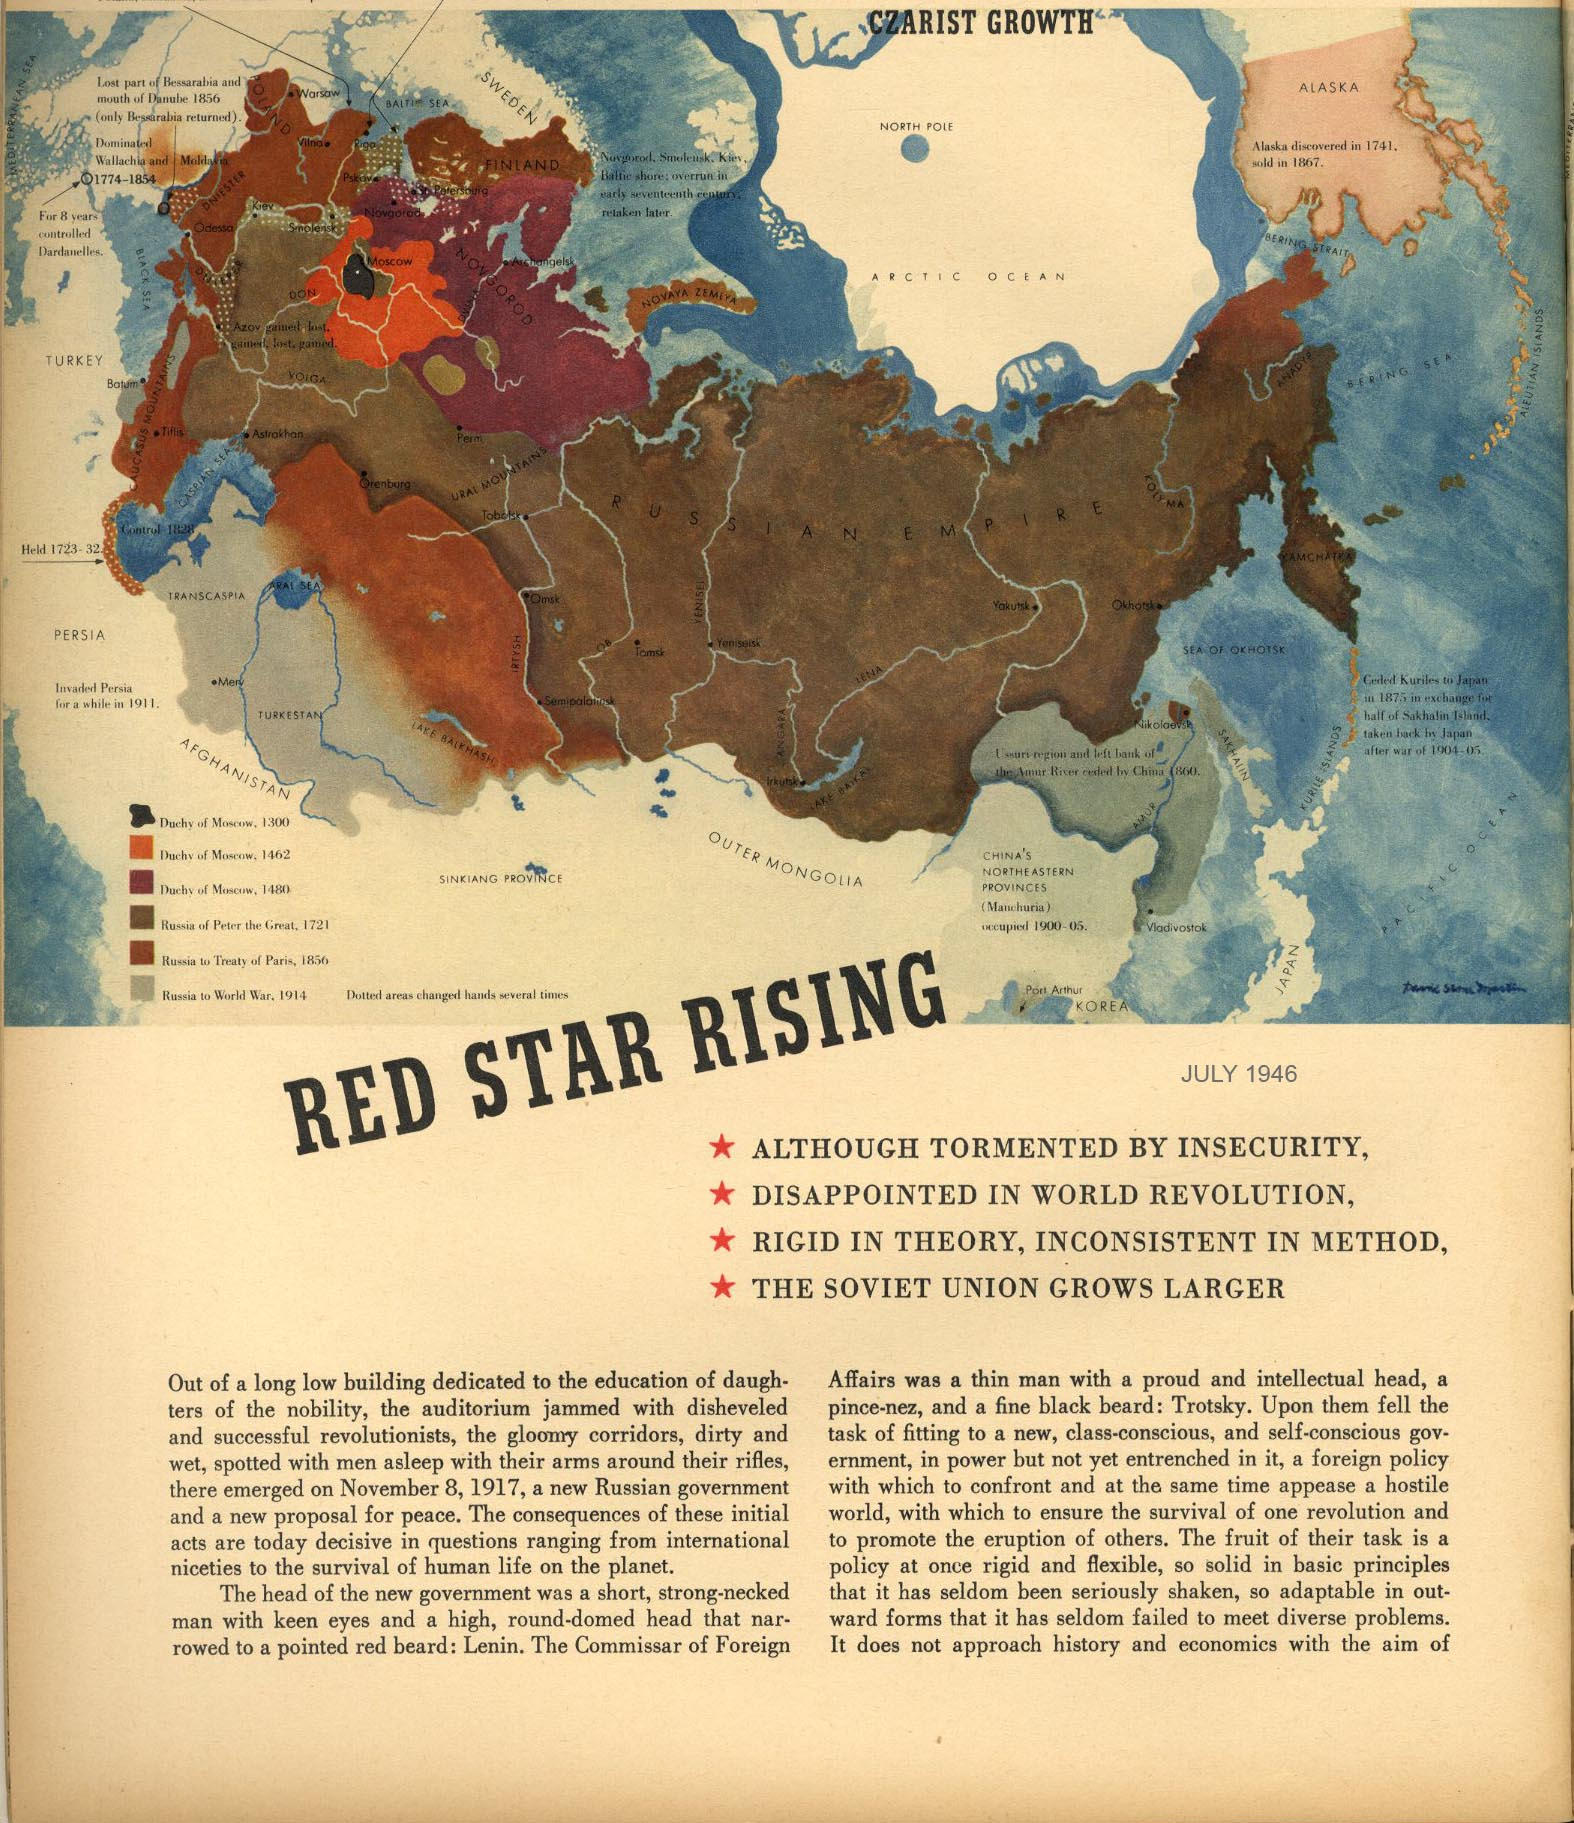 Red-Star-rising-1946